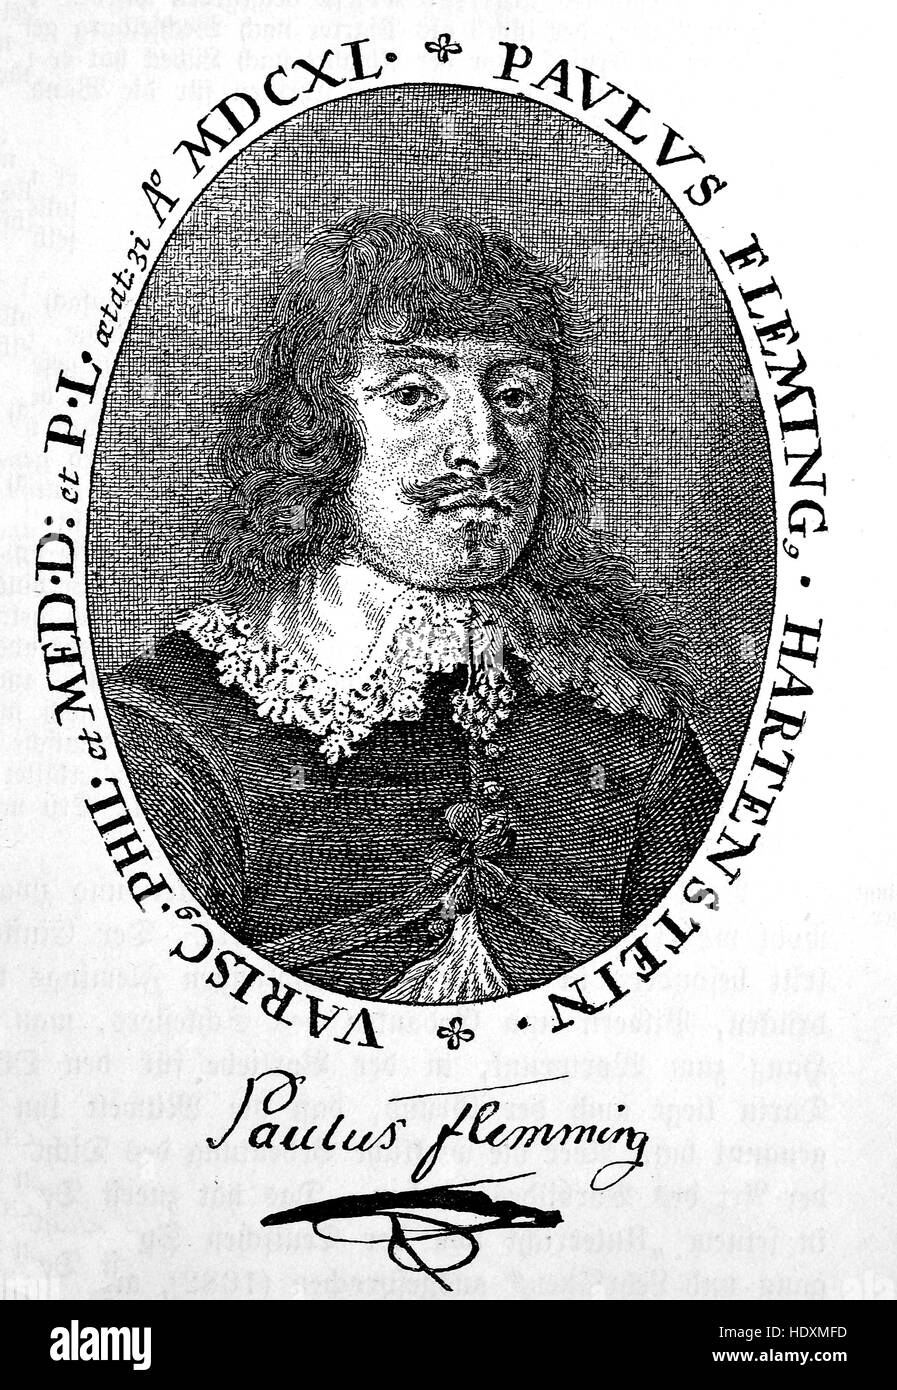 Paul Fleming, also spelt Flemming, 1609-1640, a German physician and poet, woodcut from the year 1882, digital improved - Stock Image